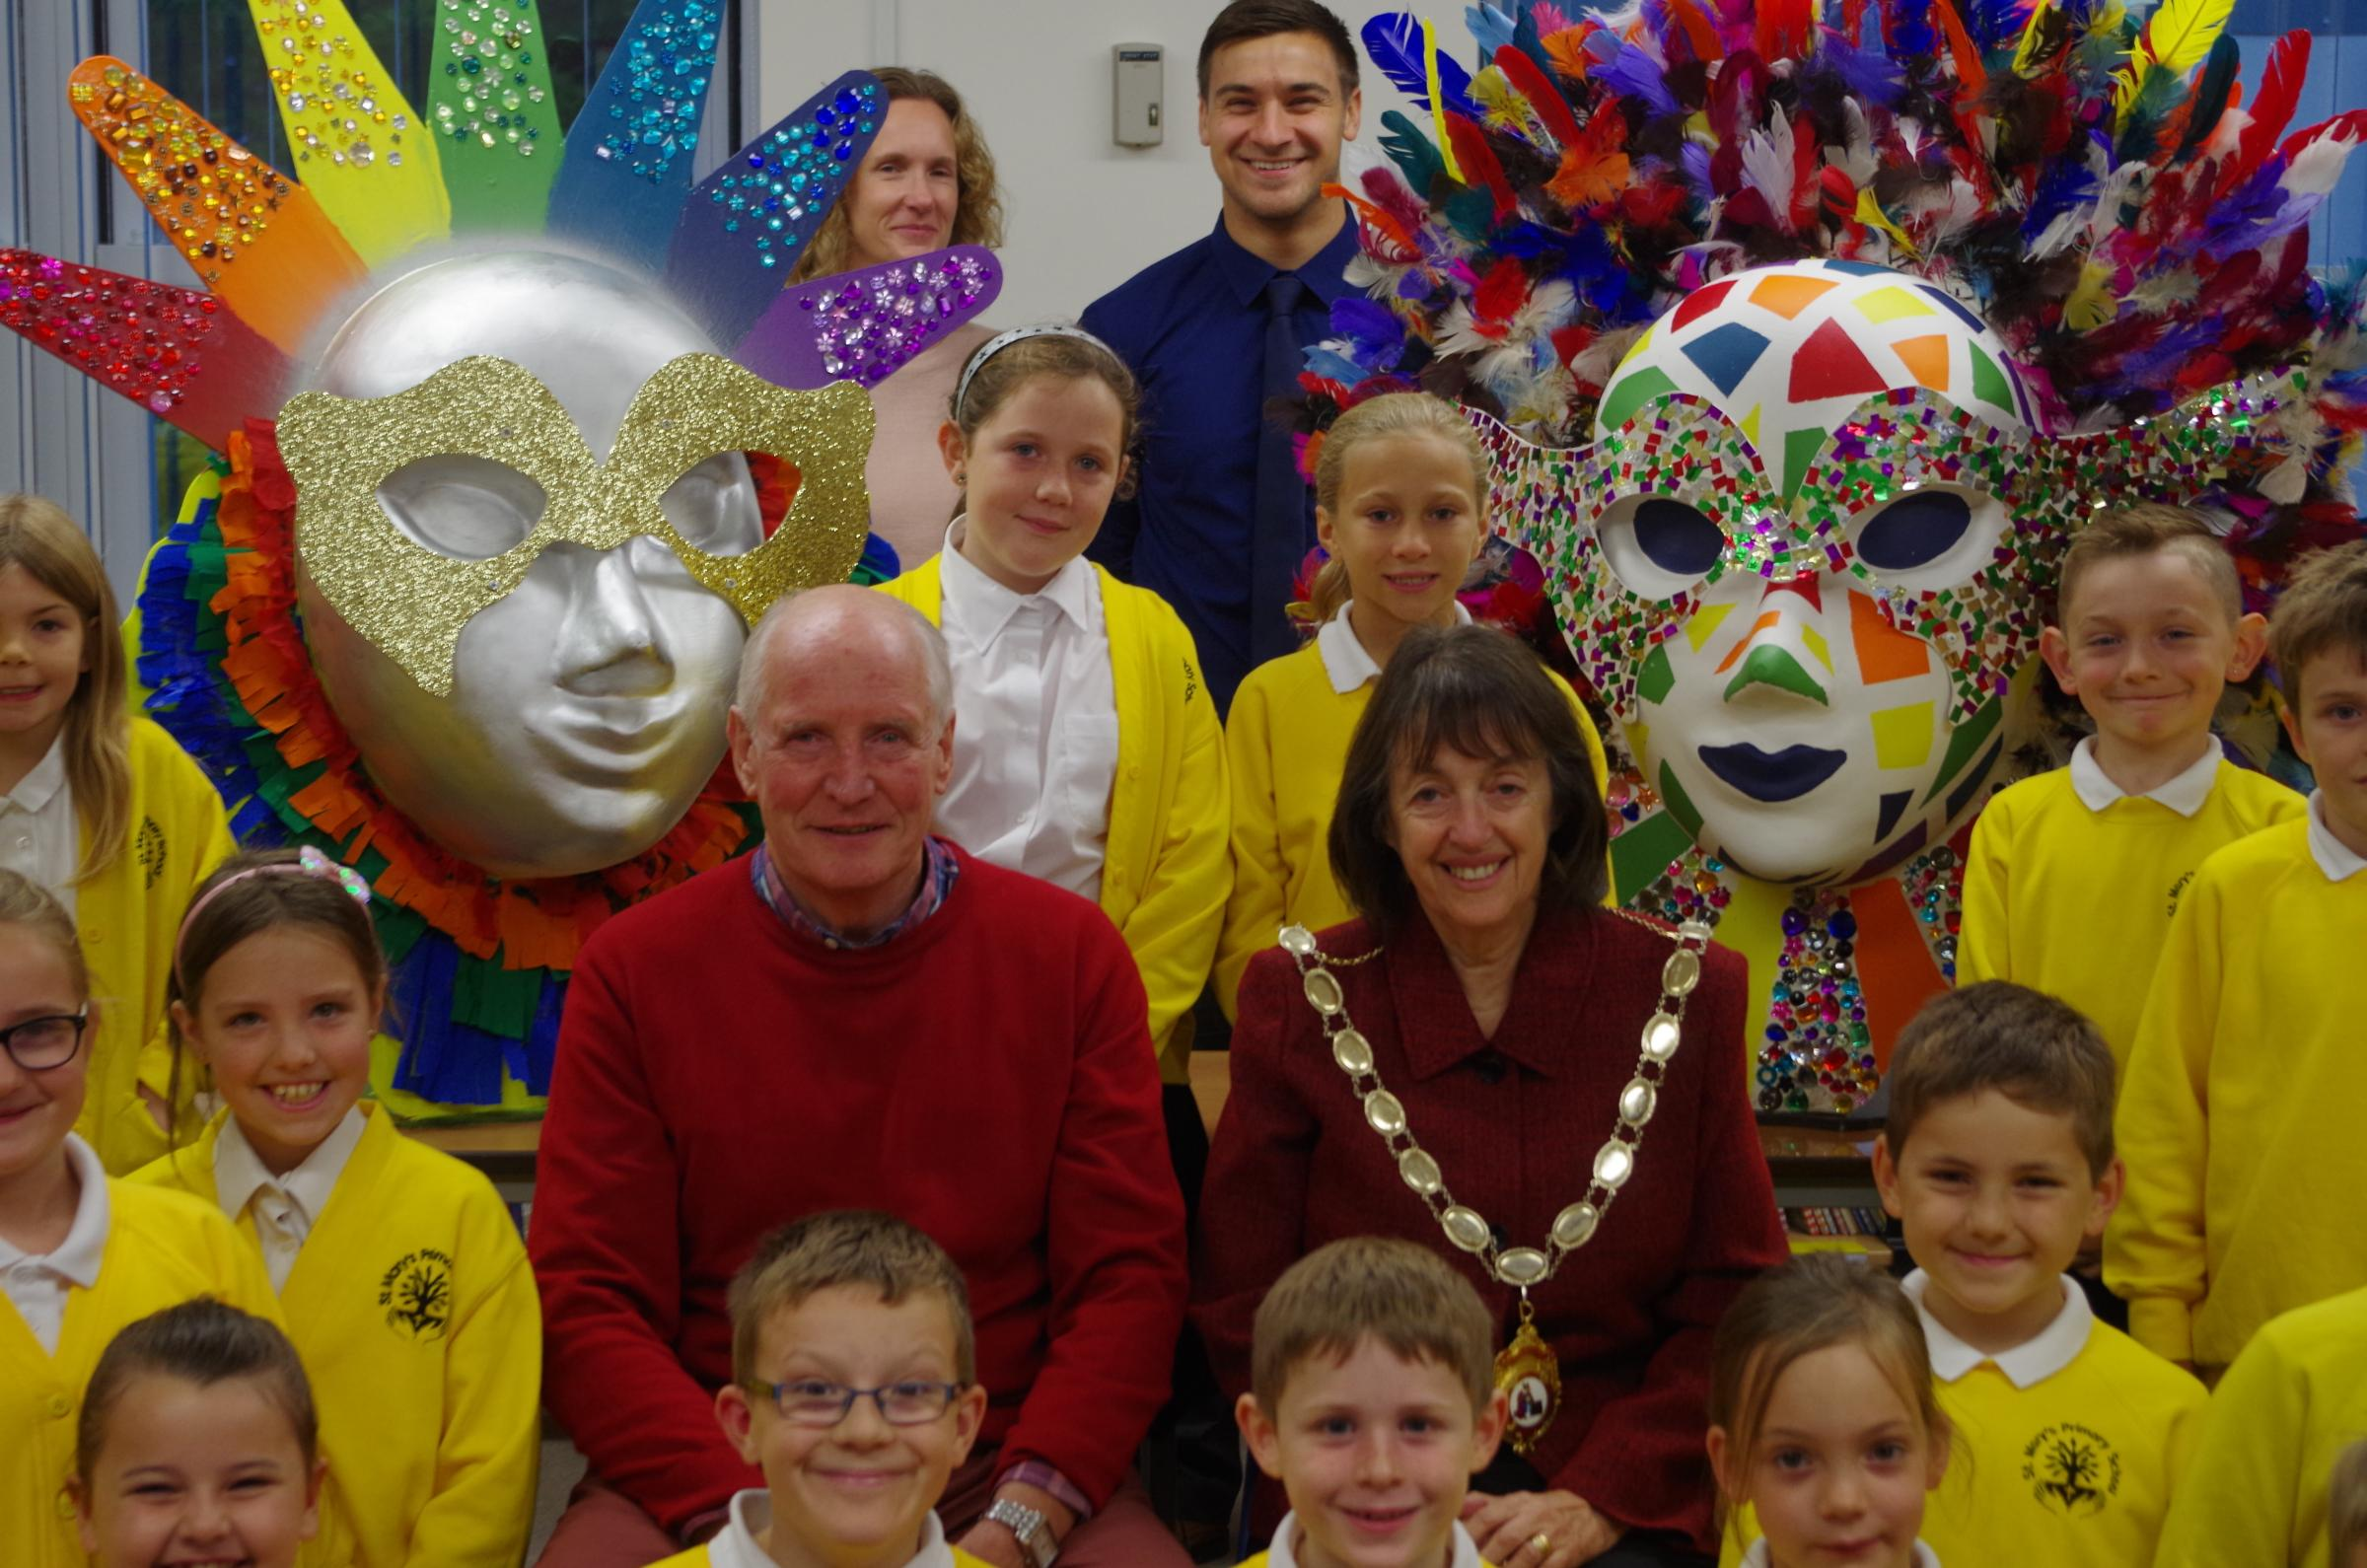 Pictured with the children of St Mary's Primary School in Bridgwater and their carnival masks is the President of the Carnival Rita Jones and committee member Chris Hocking